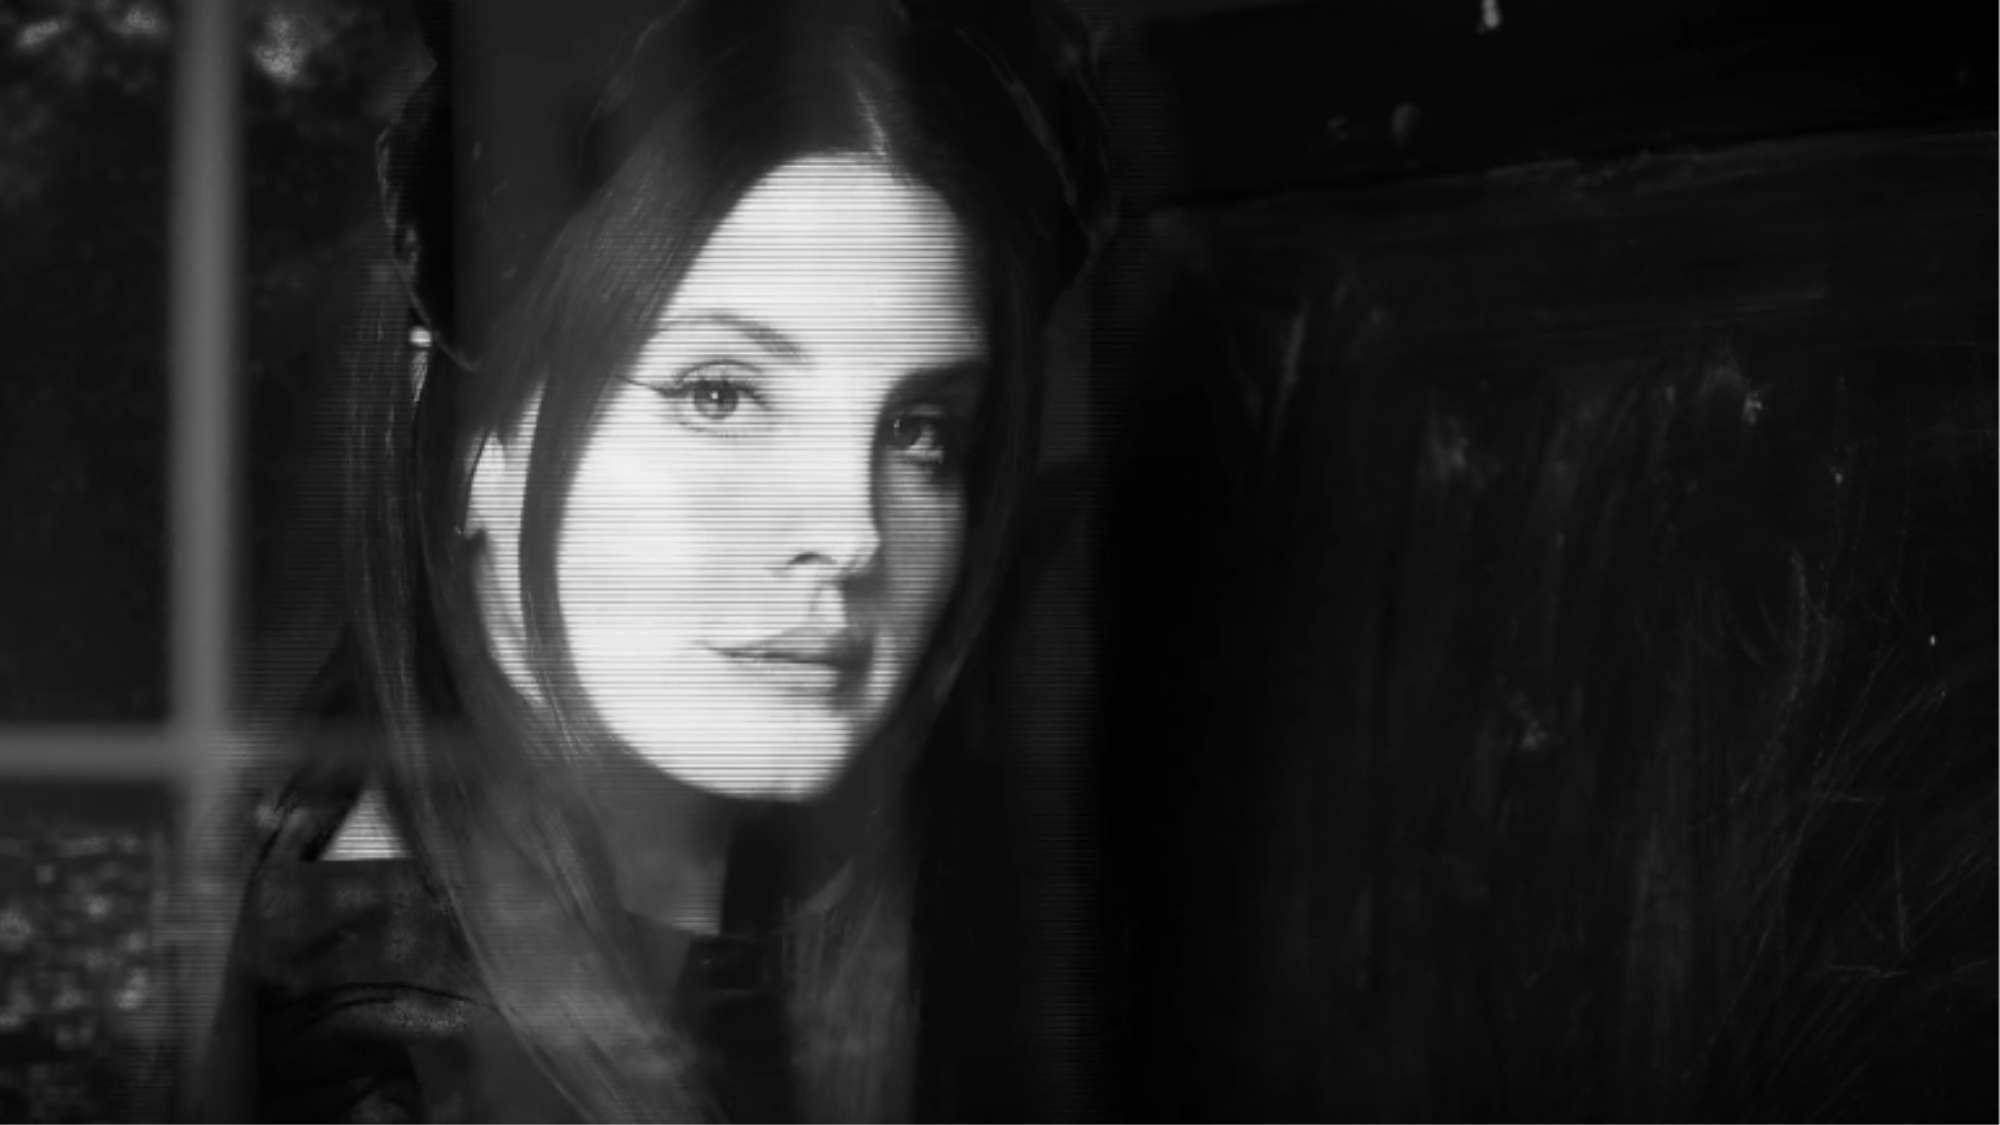 lana reflects on the state of the world in new record trailer, lust for life